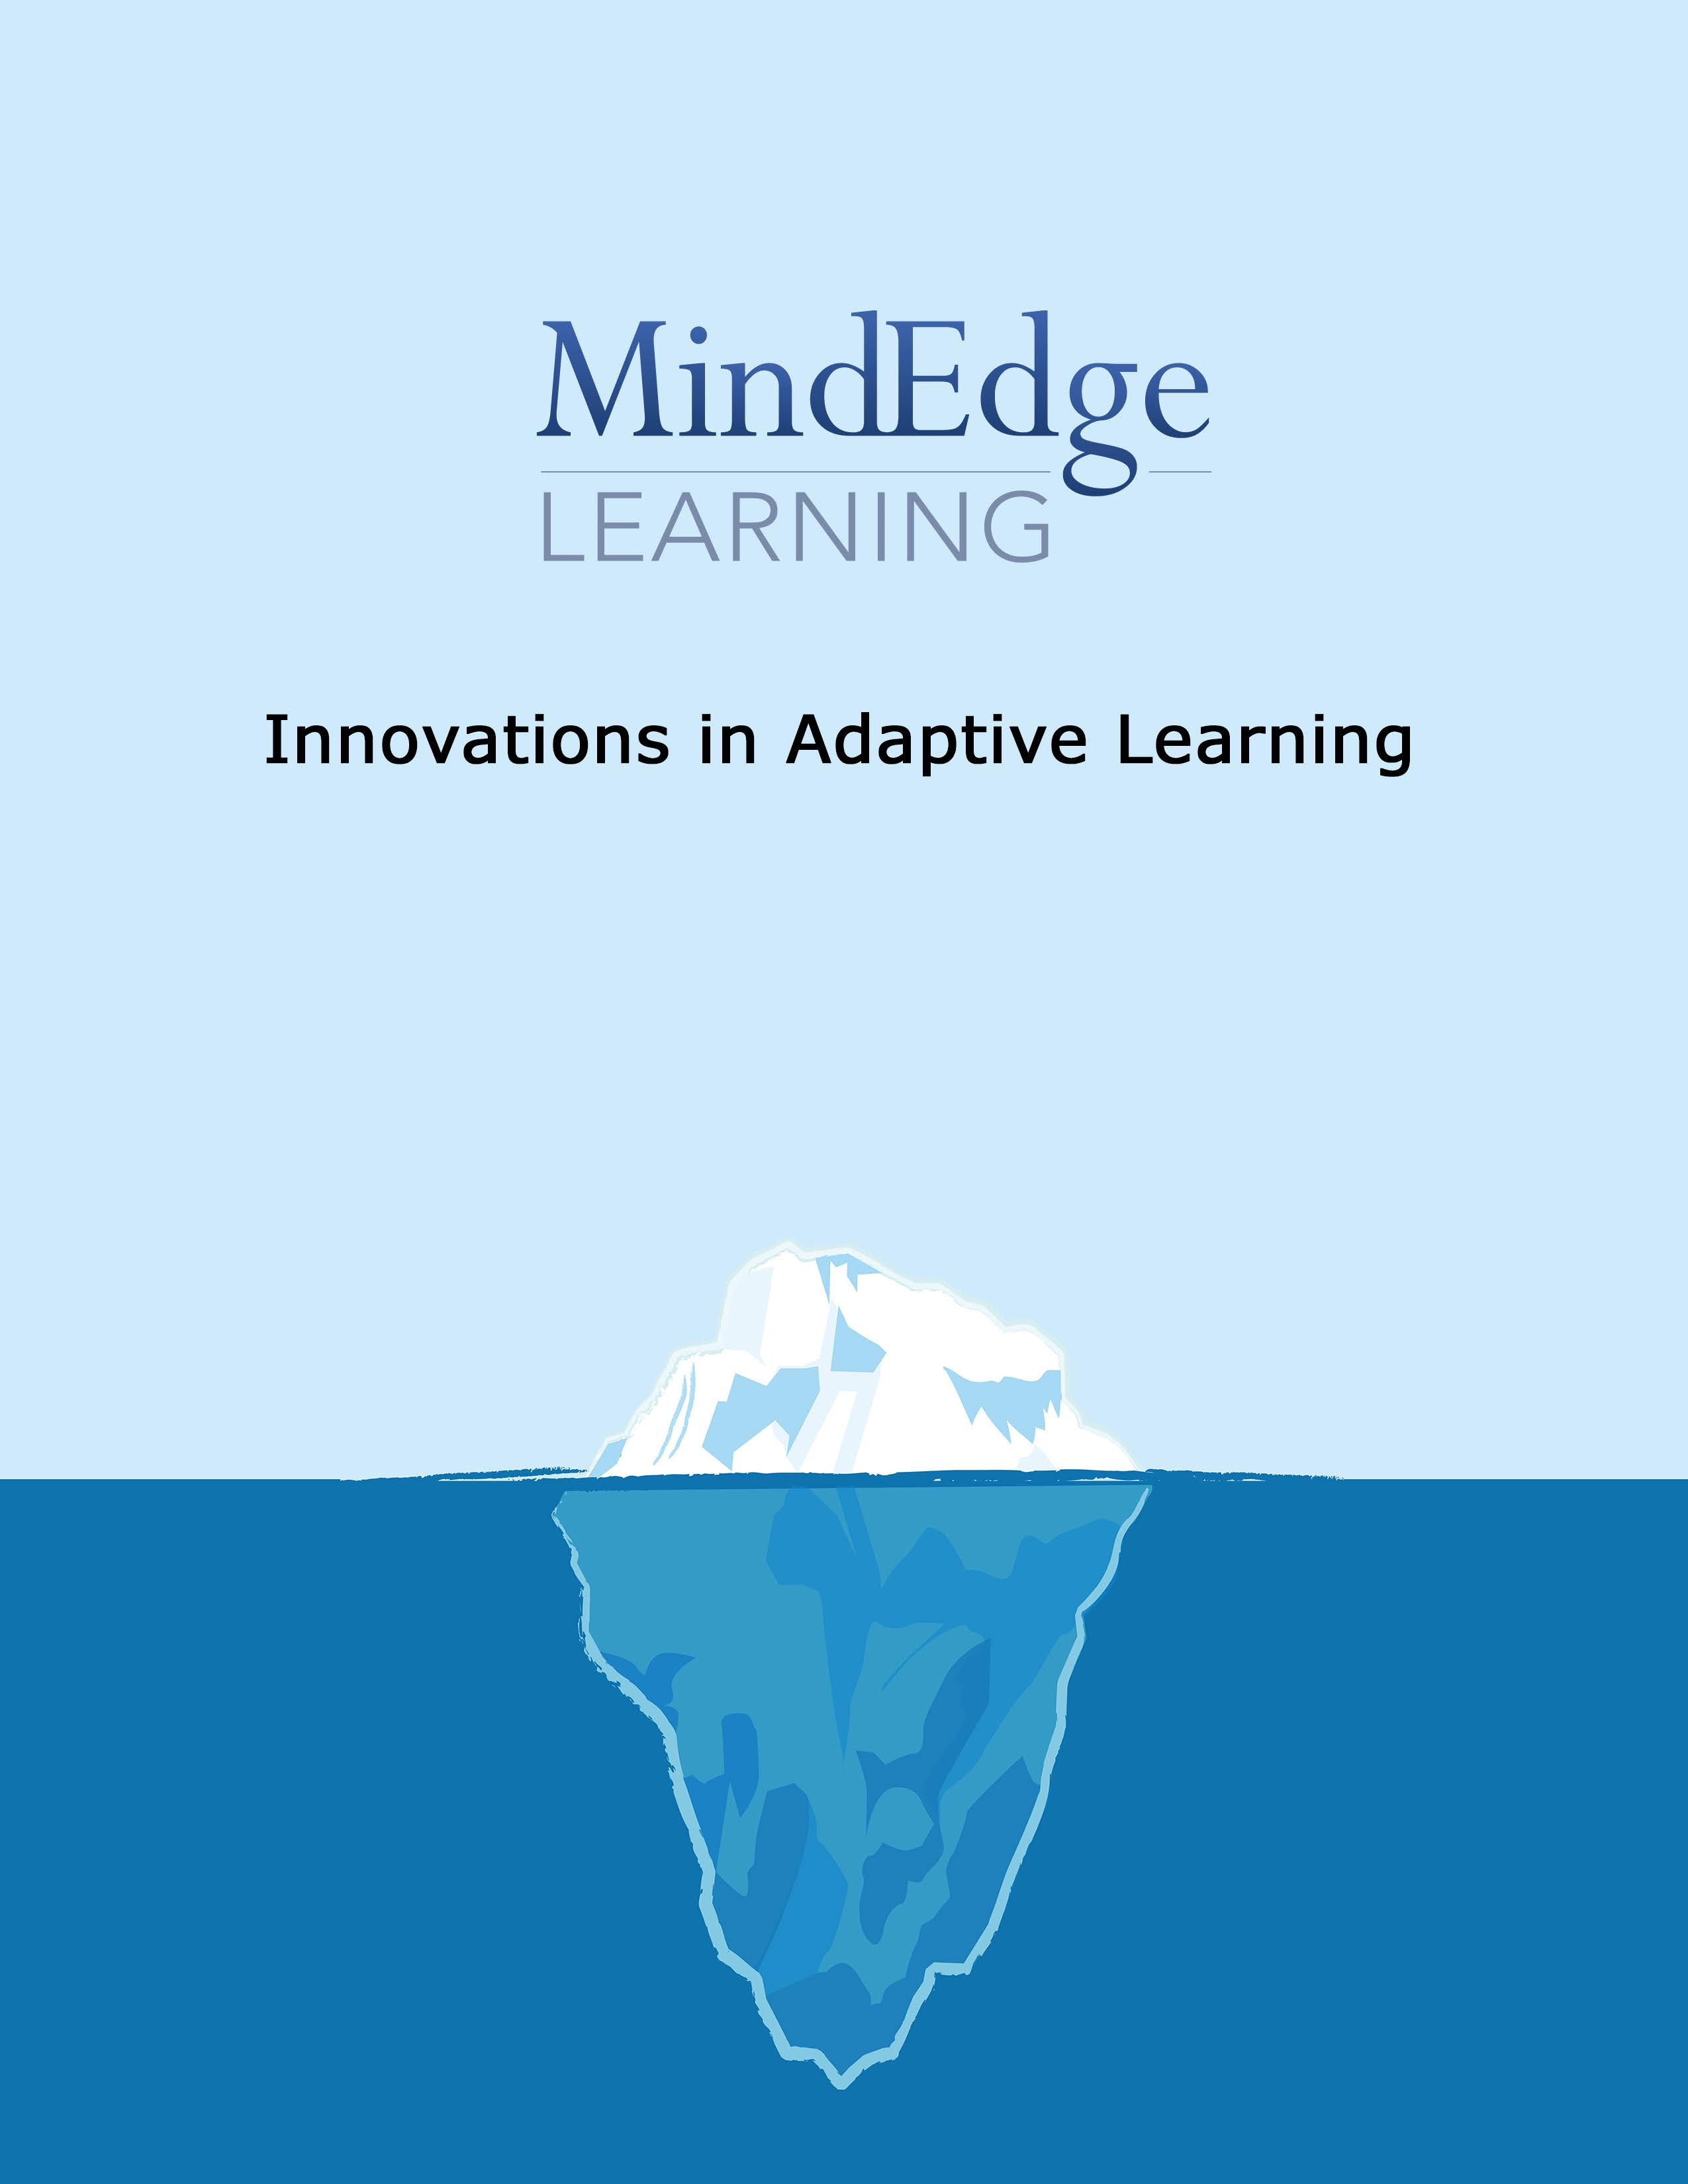 whitepaper mindedge inc white paper cover graphic